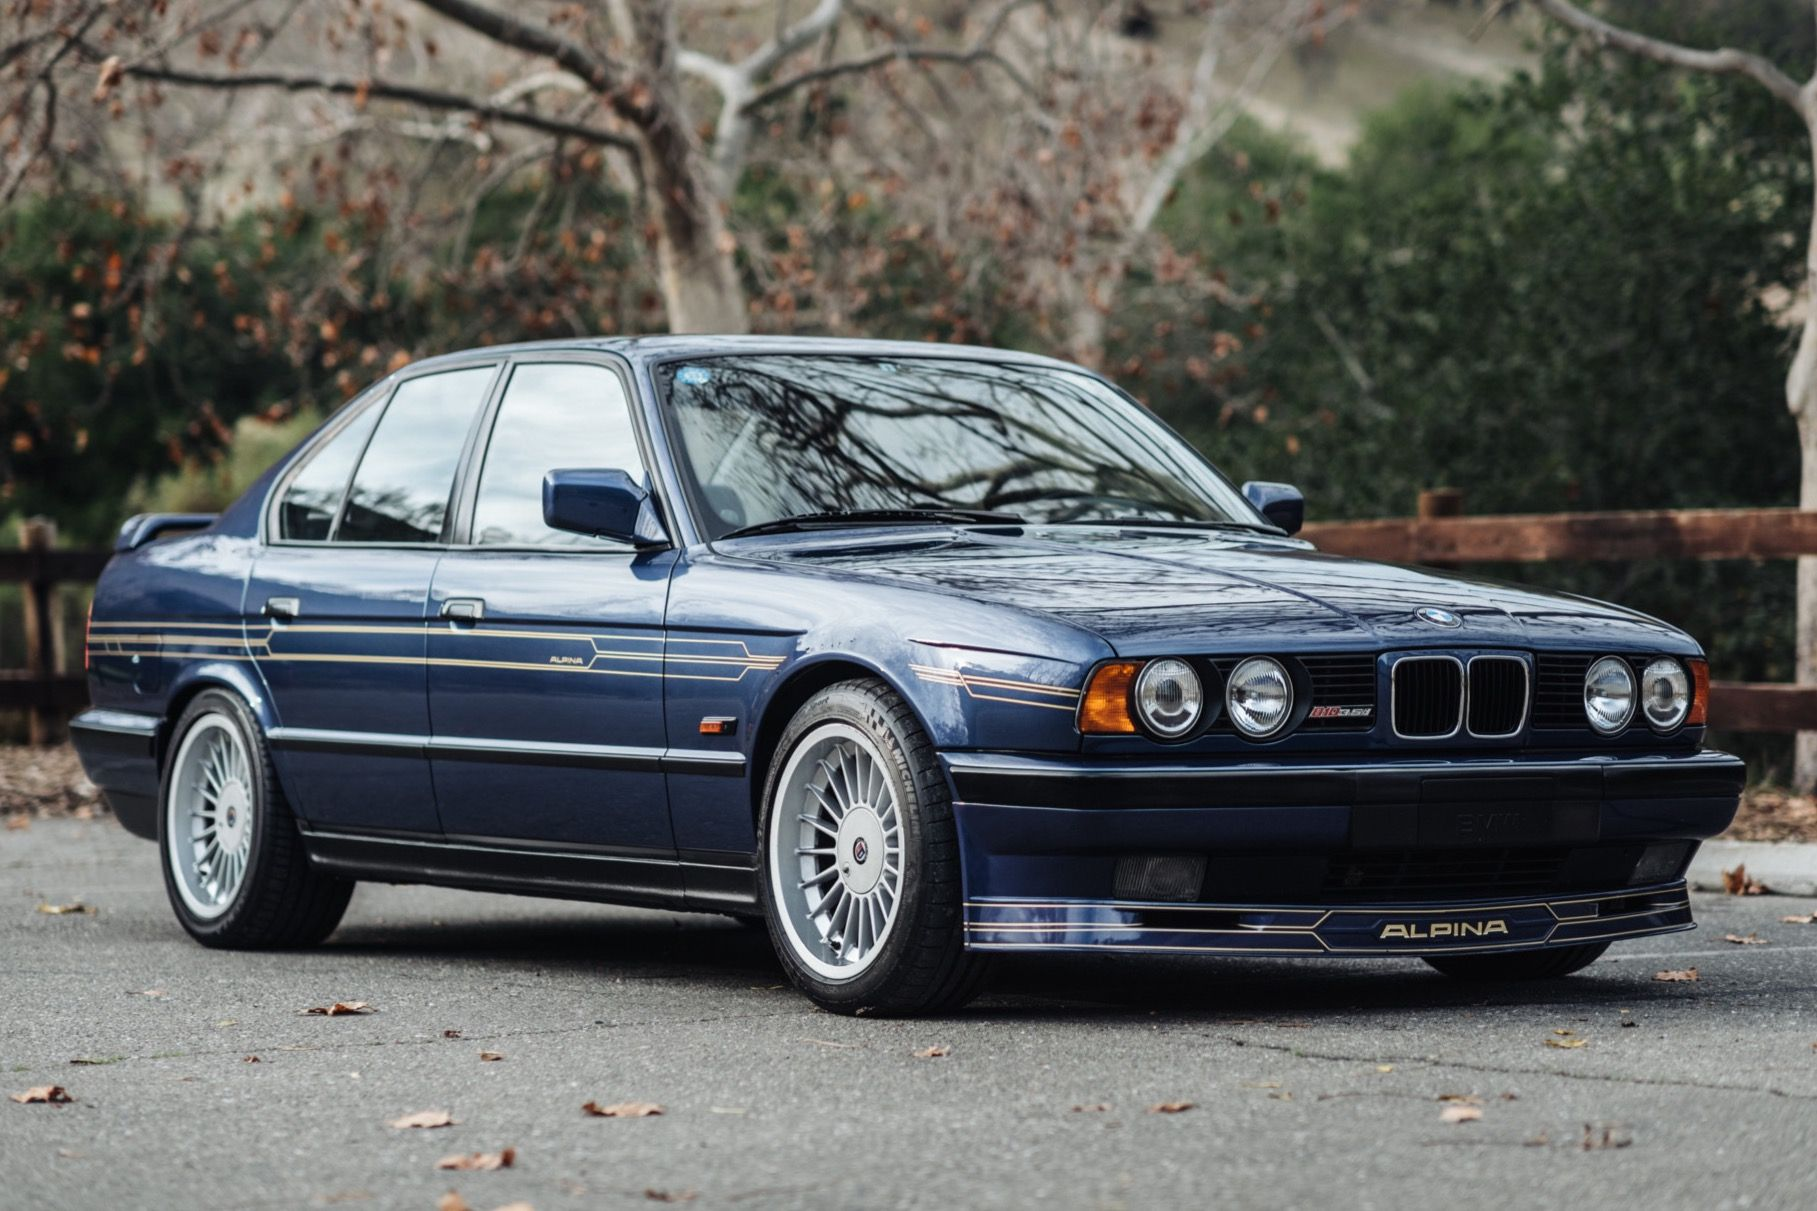 1989 Alpina B10 5 Speed Bmw E34 Bmw Alpina Bmw